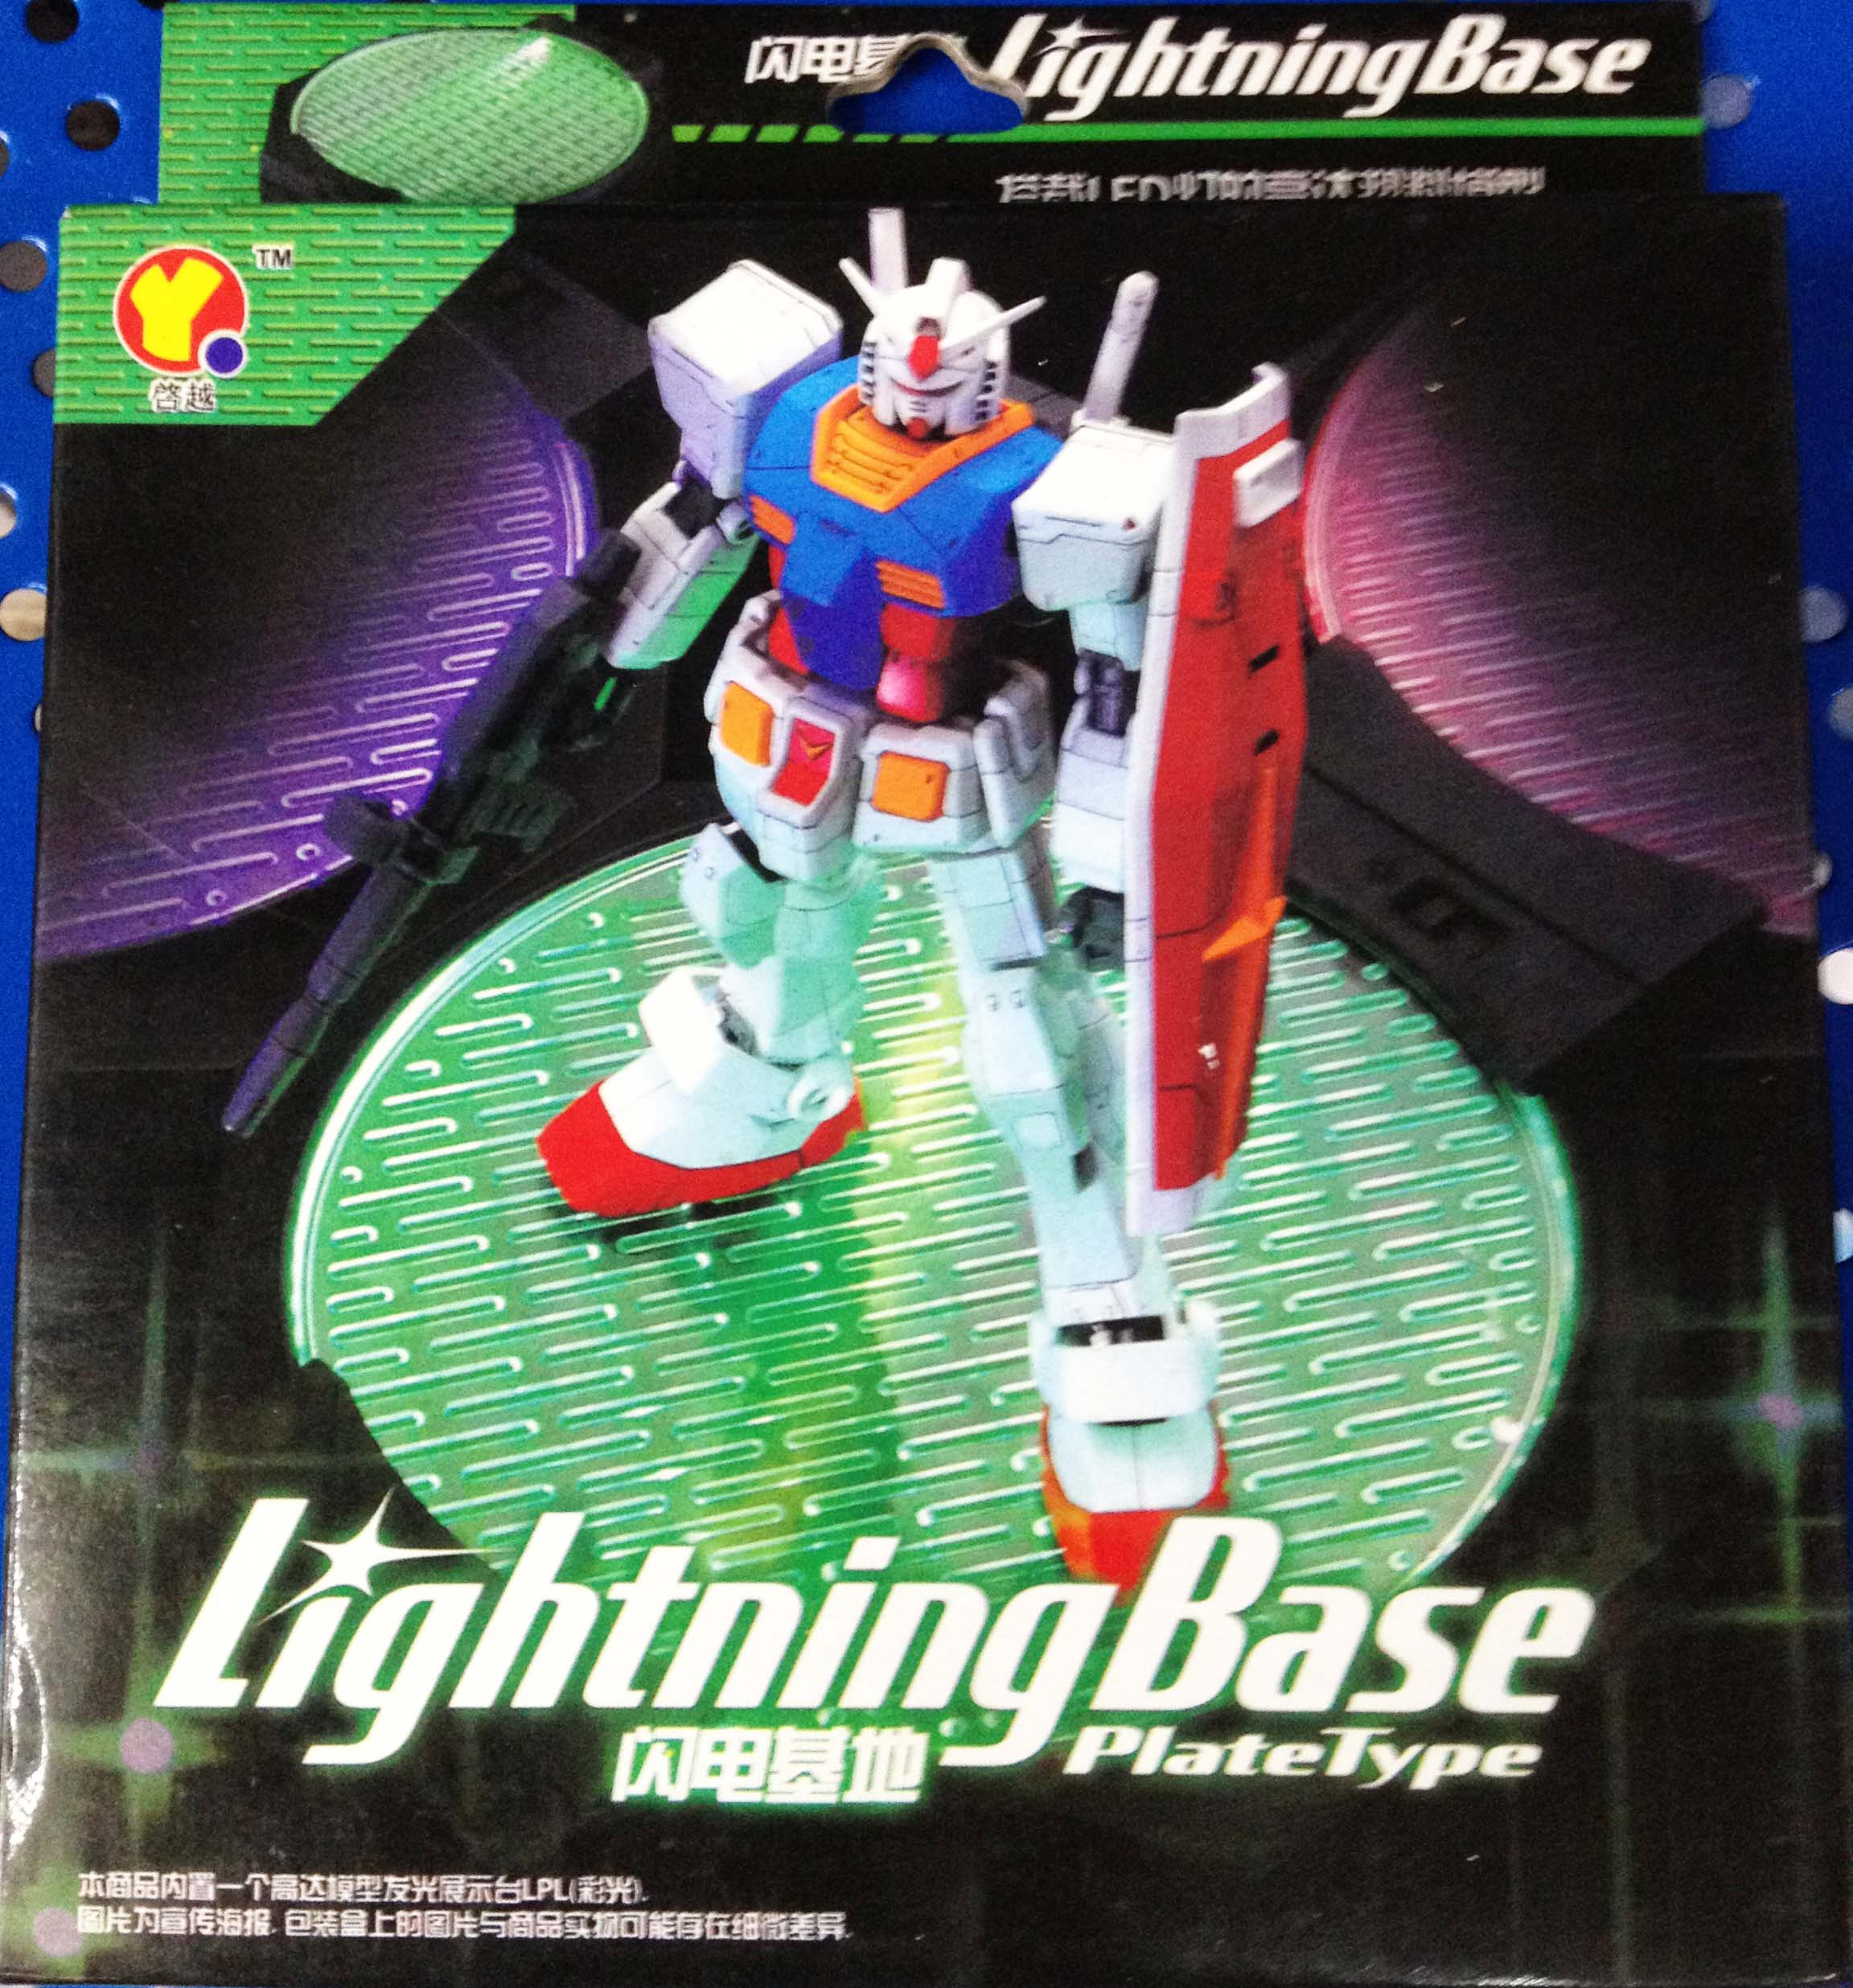 Action Base / Lightning Base Plate Type